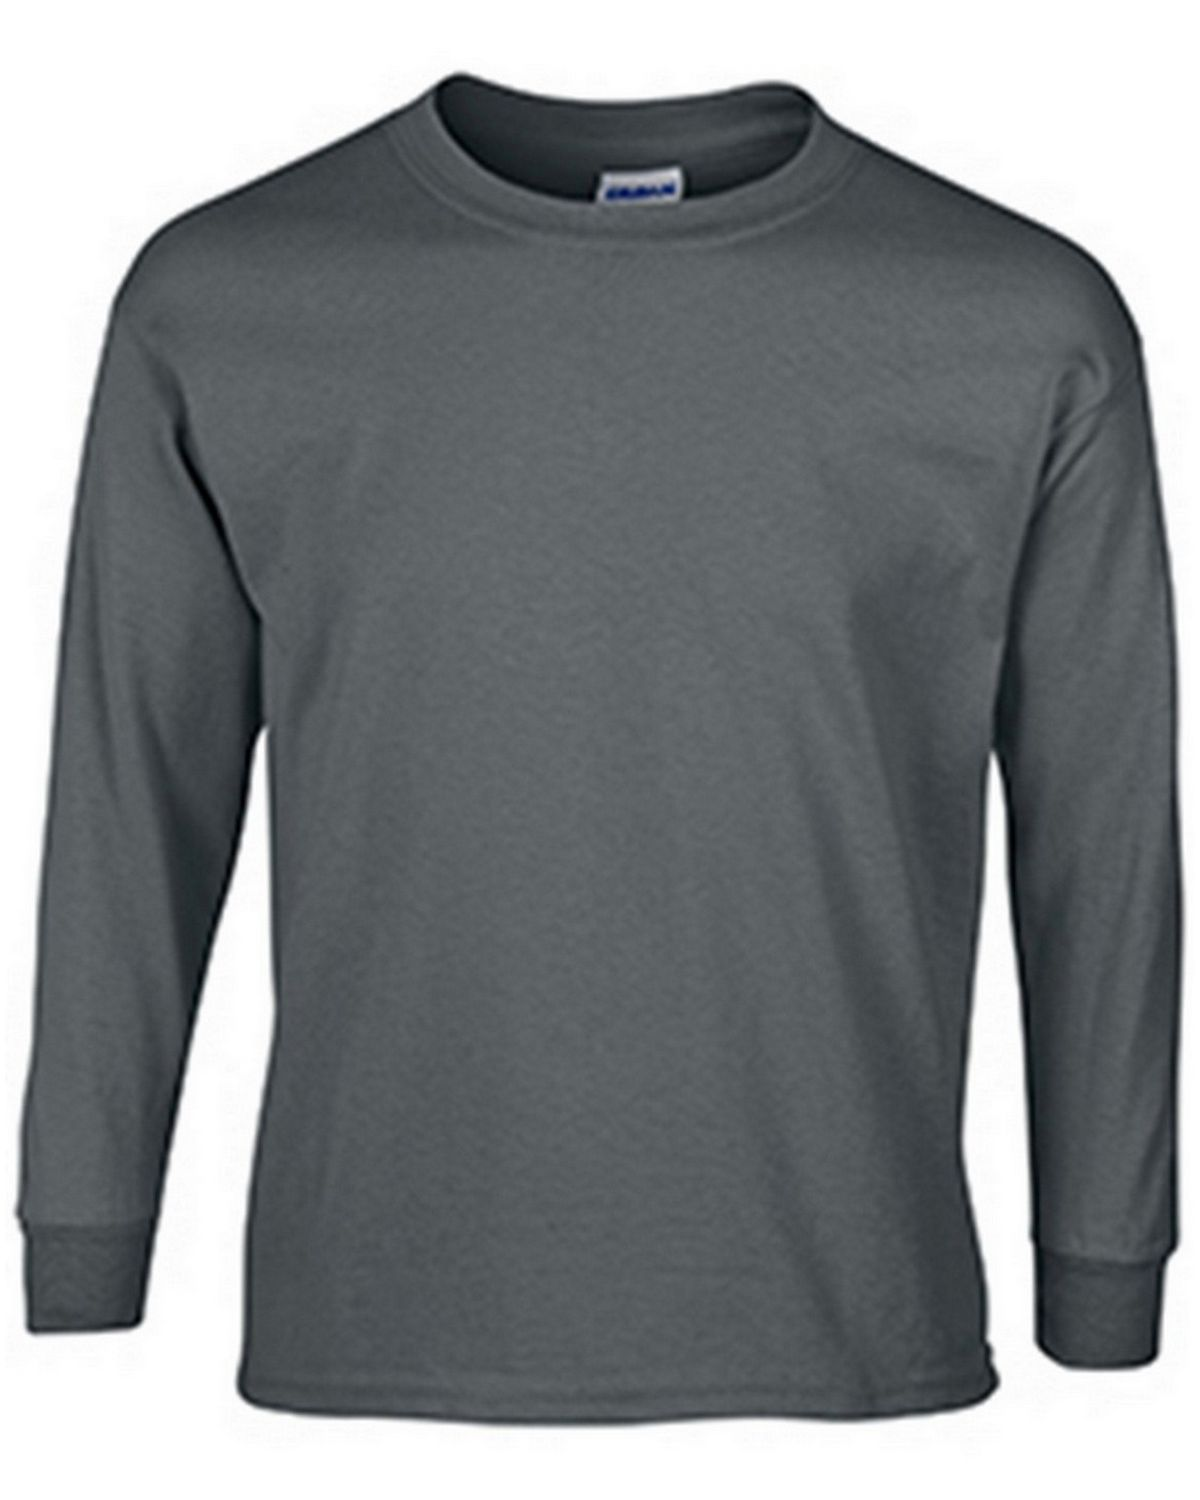 Gildan G2400B Youth Long Sleeve Tee - Charcoal - S G2400B